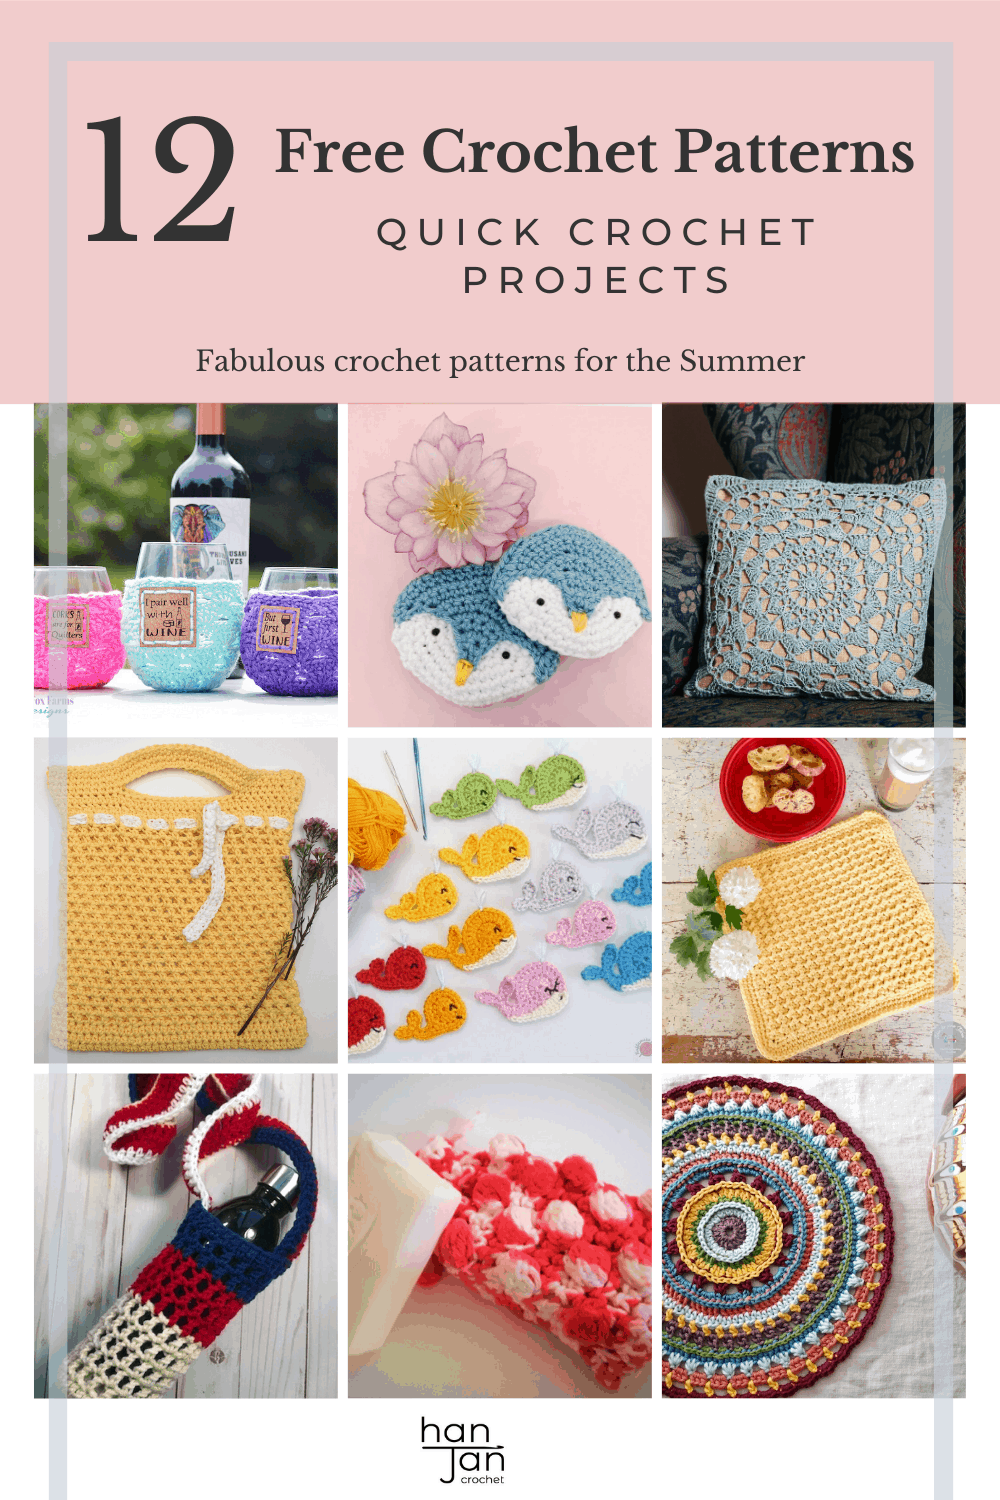 Find 12 quick crochet projects for Summer in the Summer Stitch Along. From crochet bags, dishcloths, mandalas, cushions, scrubbies to appliques, there is a great selection of skill level and project type to suit everyone in this freee crochet pattern collection.